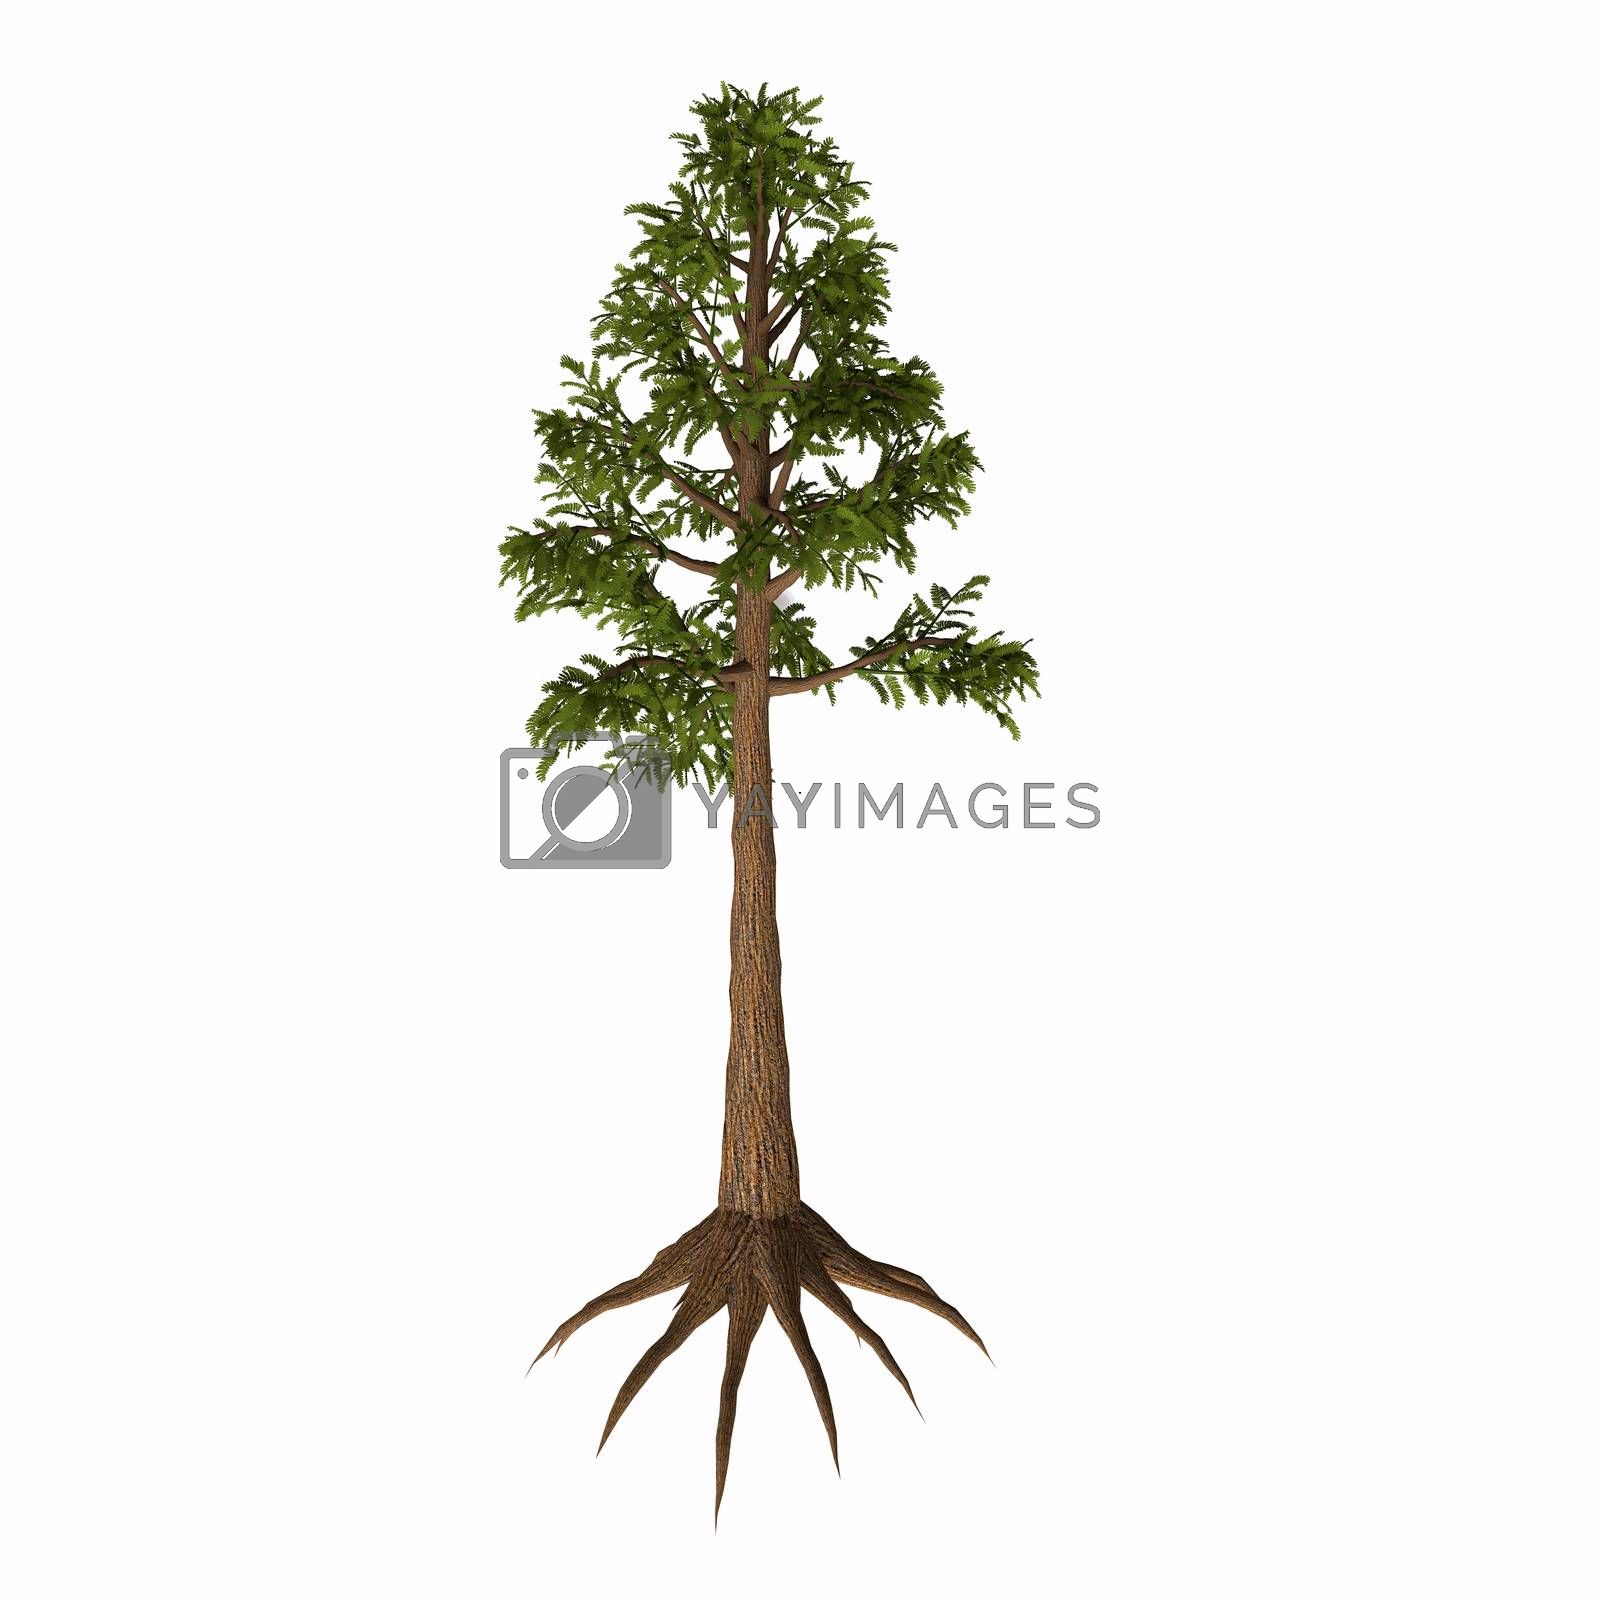 Archaeopteris is an extinct genus of tree-like plants with fern-like leaves that lived in the Devonian to Carboniferous Periods.